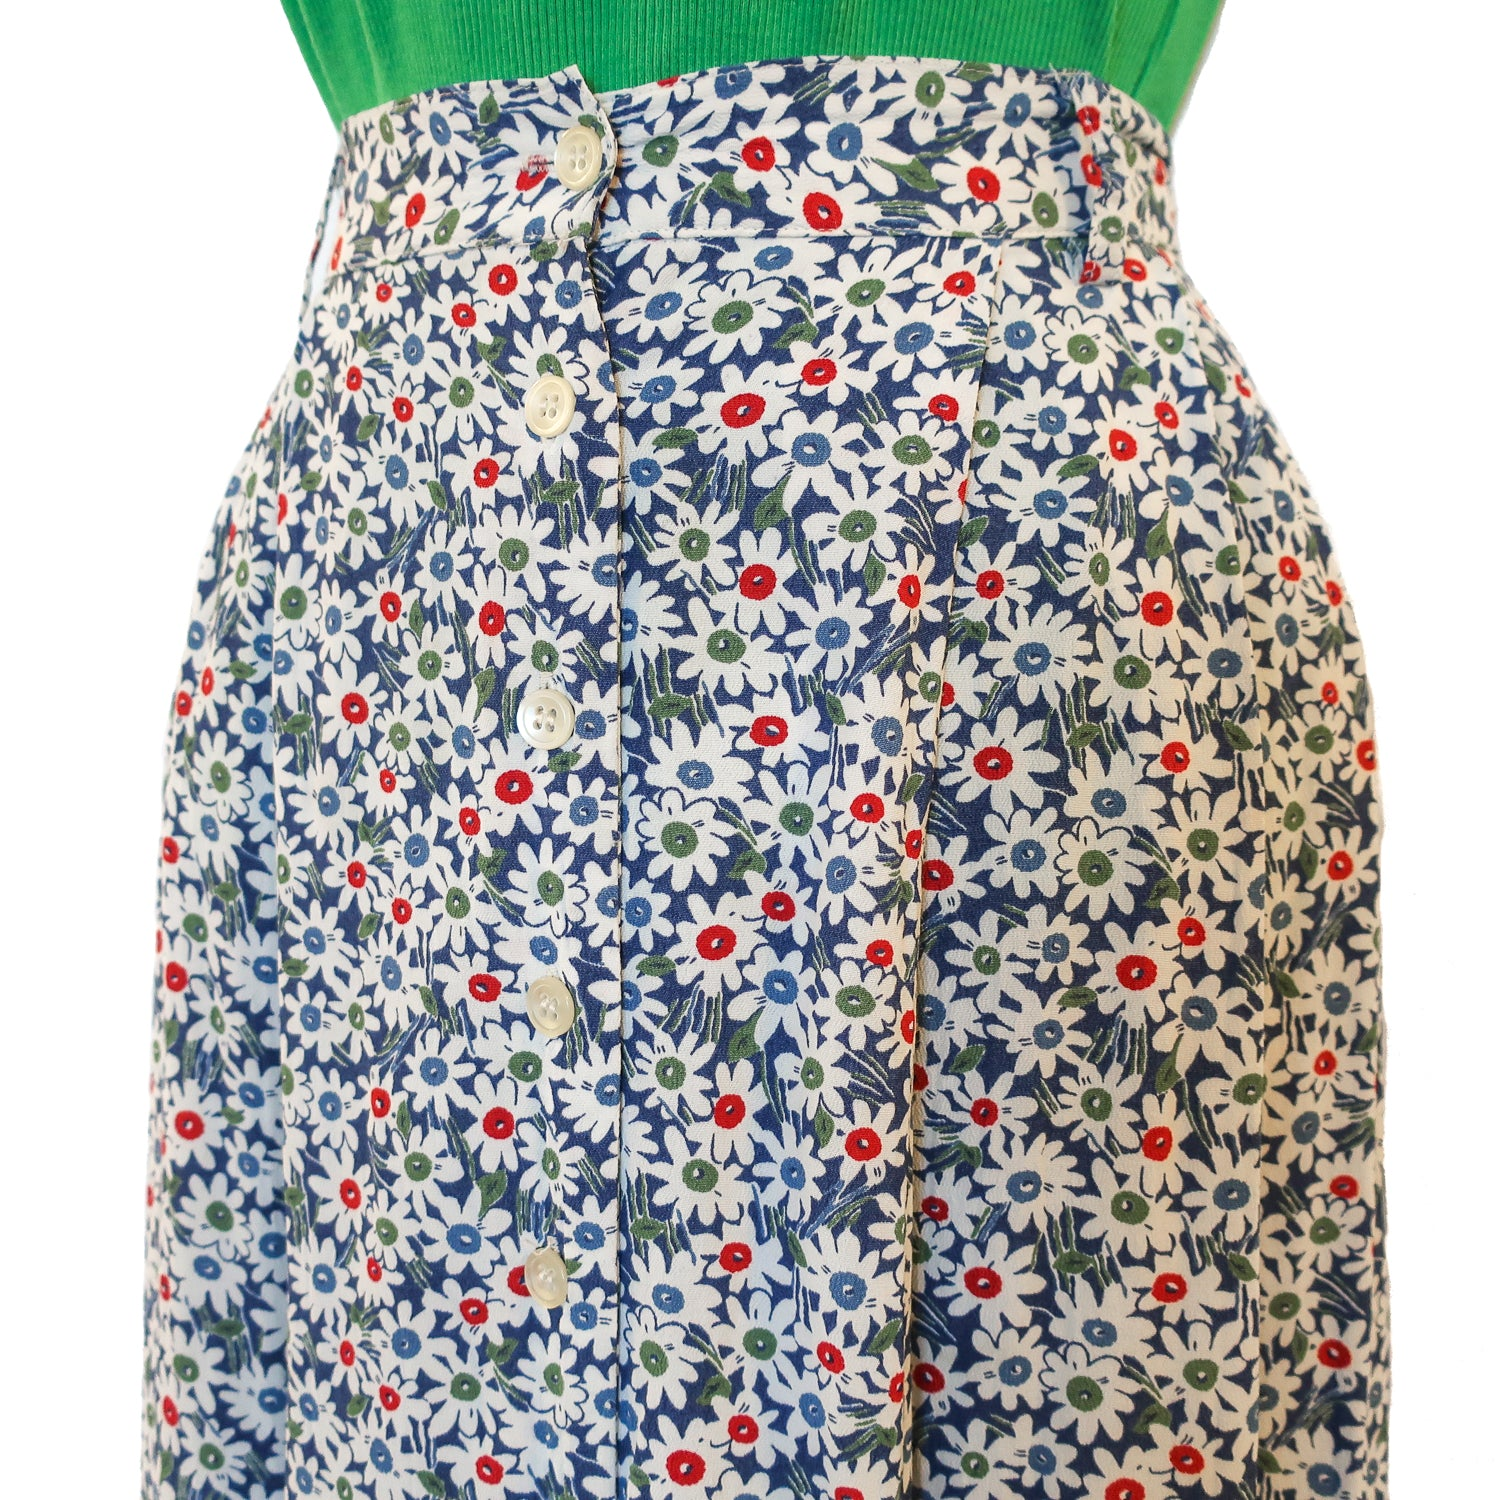 Second Room Vintage Clothing. Vintage 90s daisy floral Esprit midi skirt, in white, red and blue. Free North American shipping on all orders.